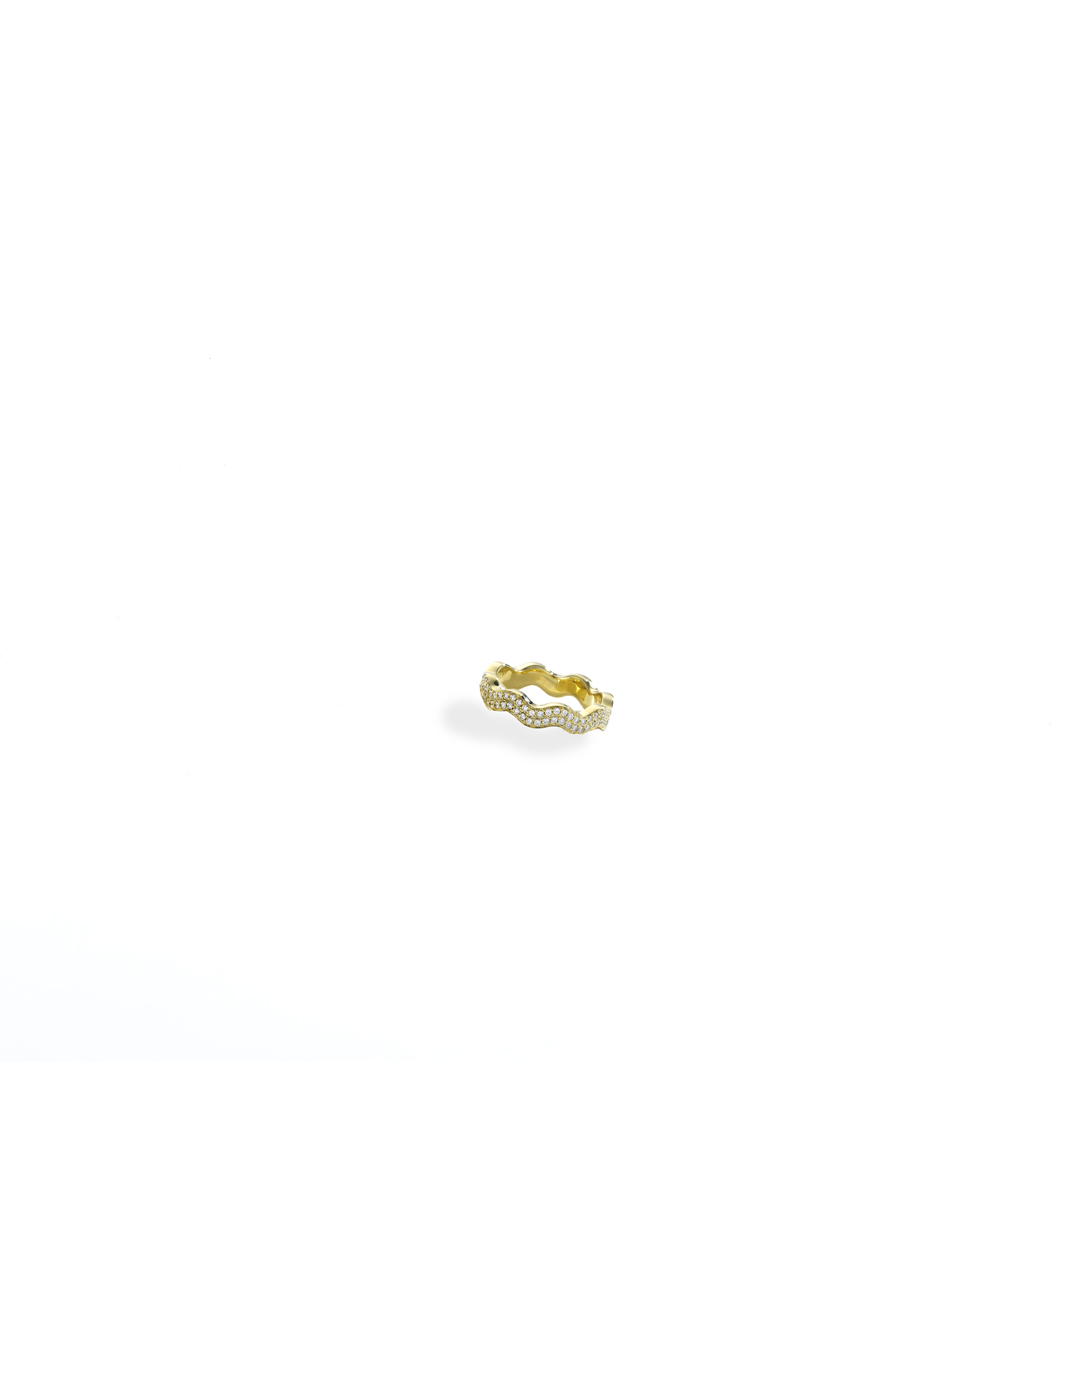 mish_products_rings_RicRac-Ring-1